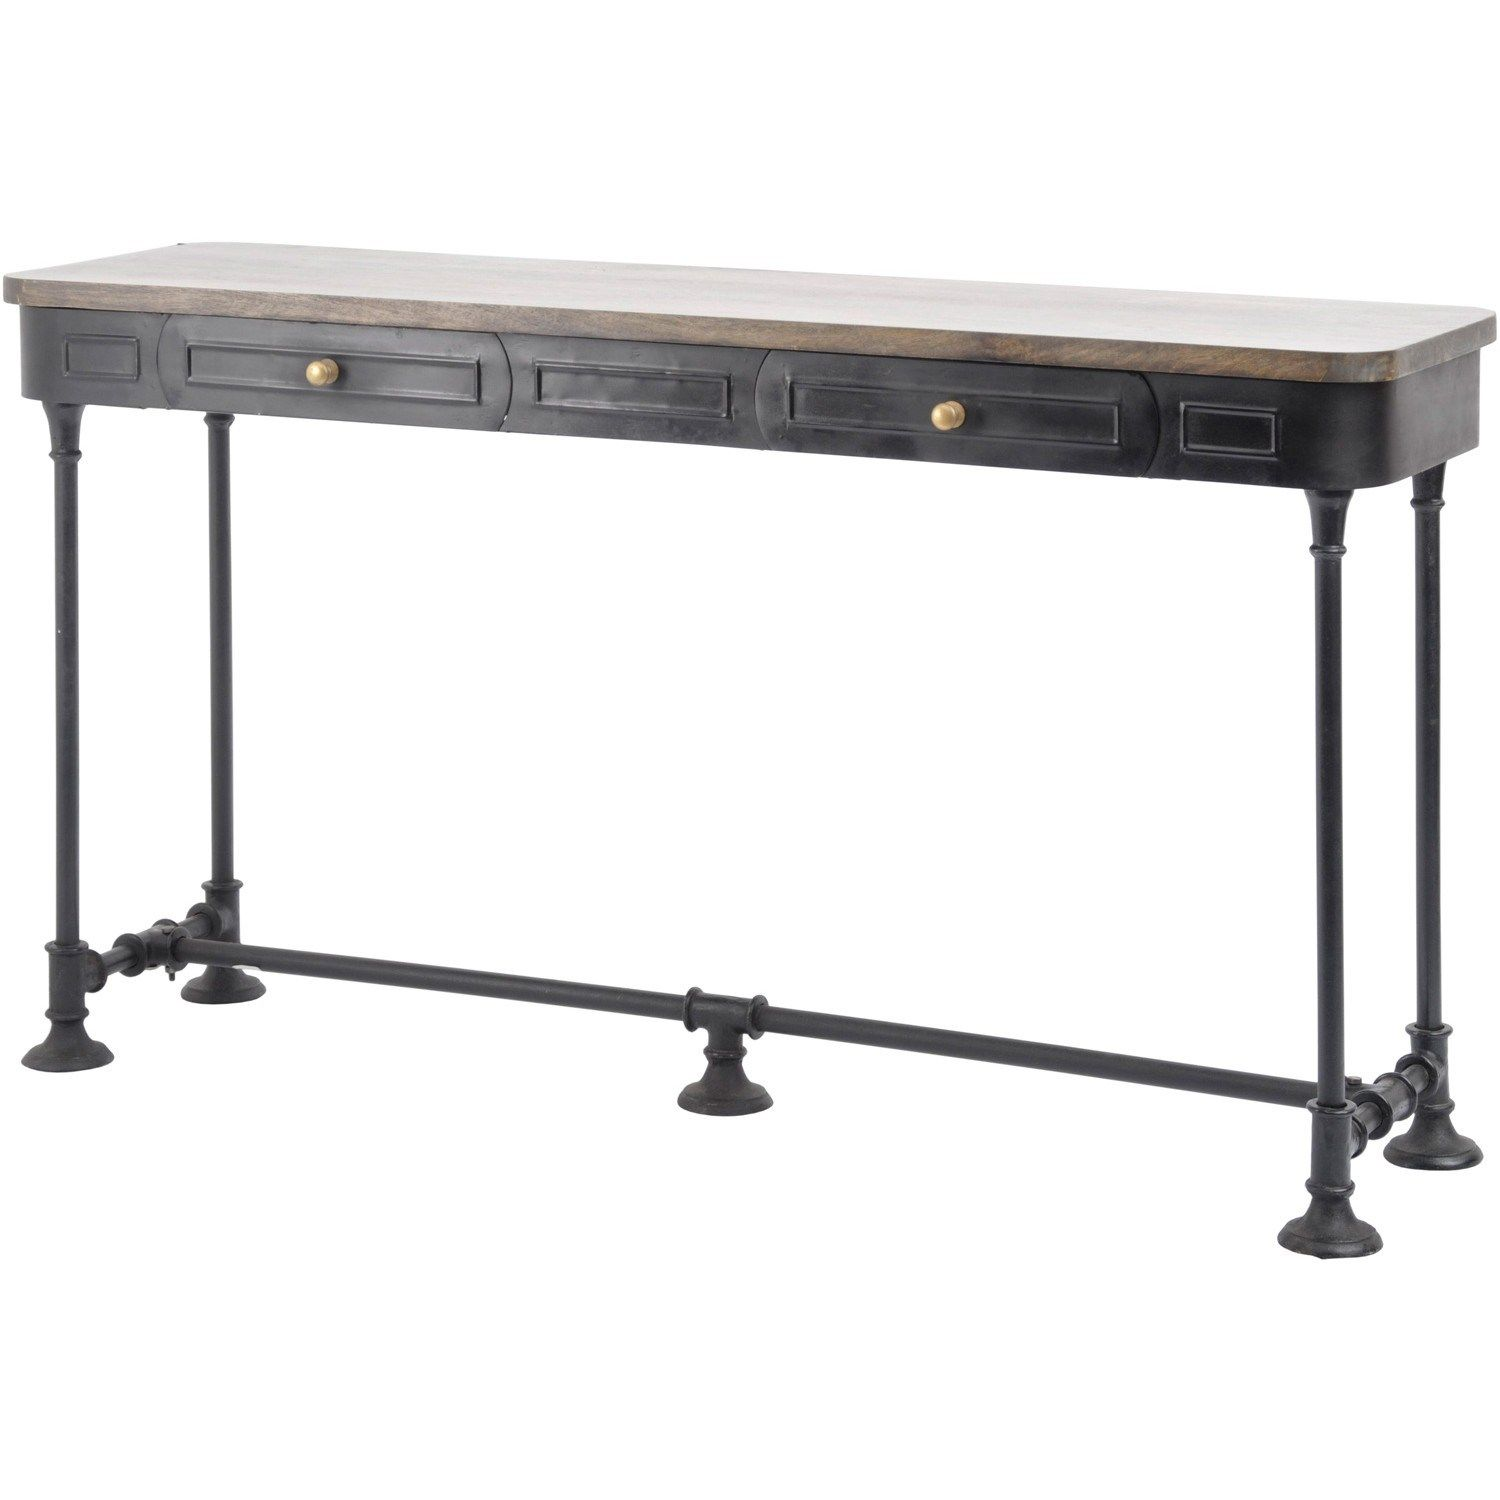 48 Long Thin Table Black Console Table Black Metal Console Table Console Table